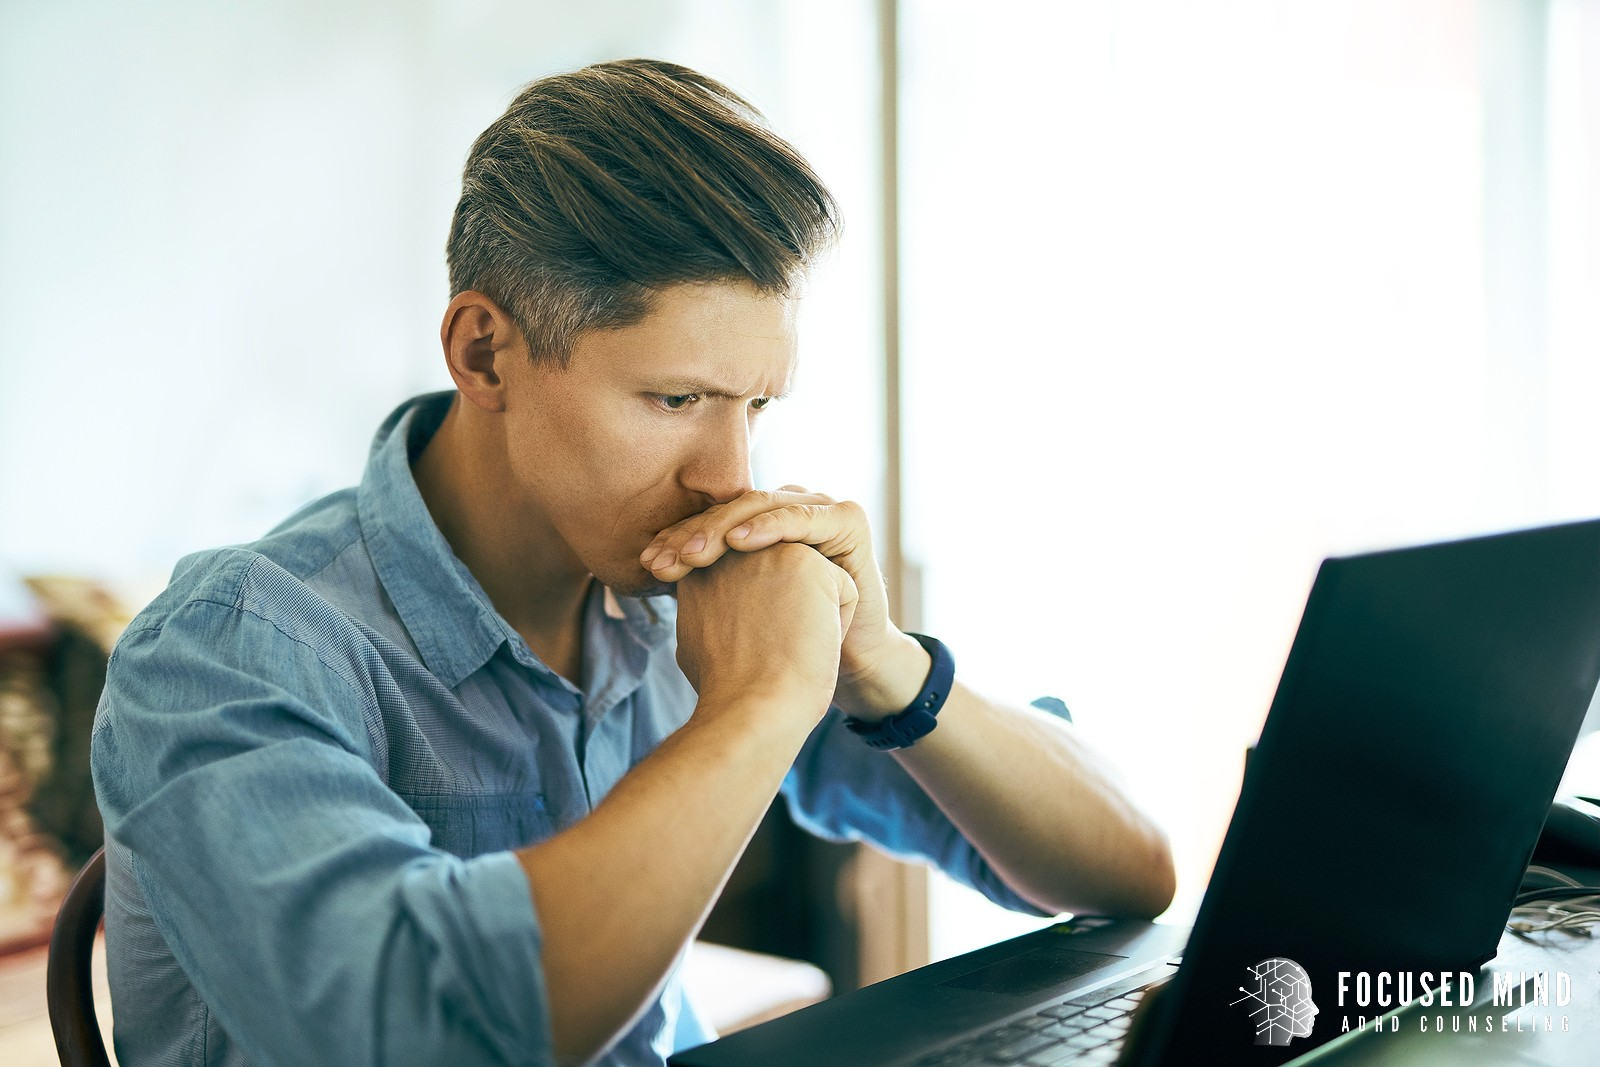 A man sits with a pensive look as he stares at his laptop. ADHD and perfectionism can go hand in hand. Contact Focused Mind ADHD Counseling for support with ADHD symptoms. A therapist in Columbus Ohio can provide support today!